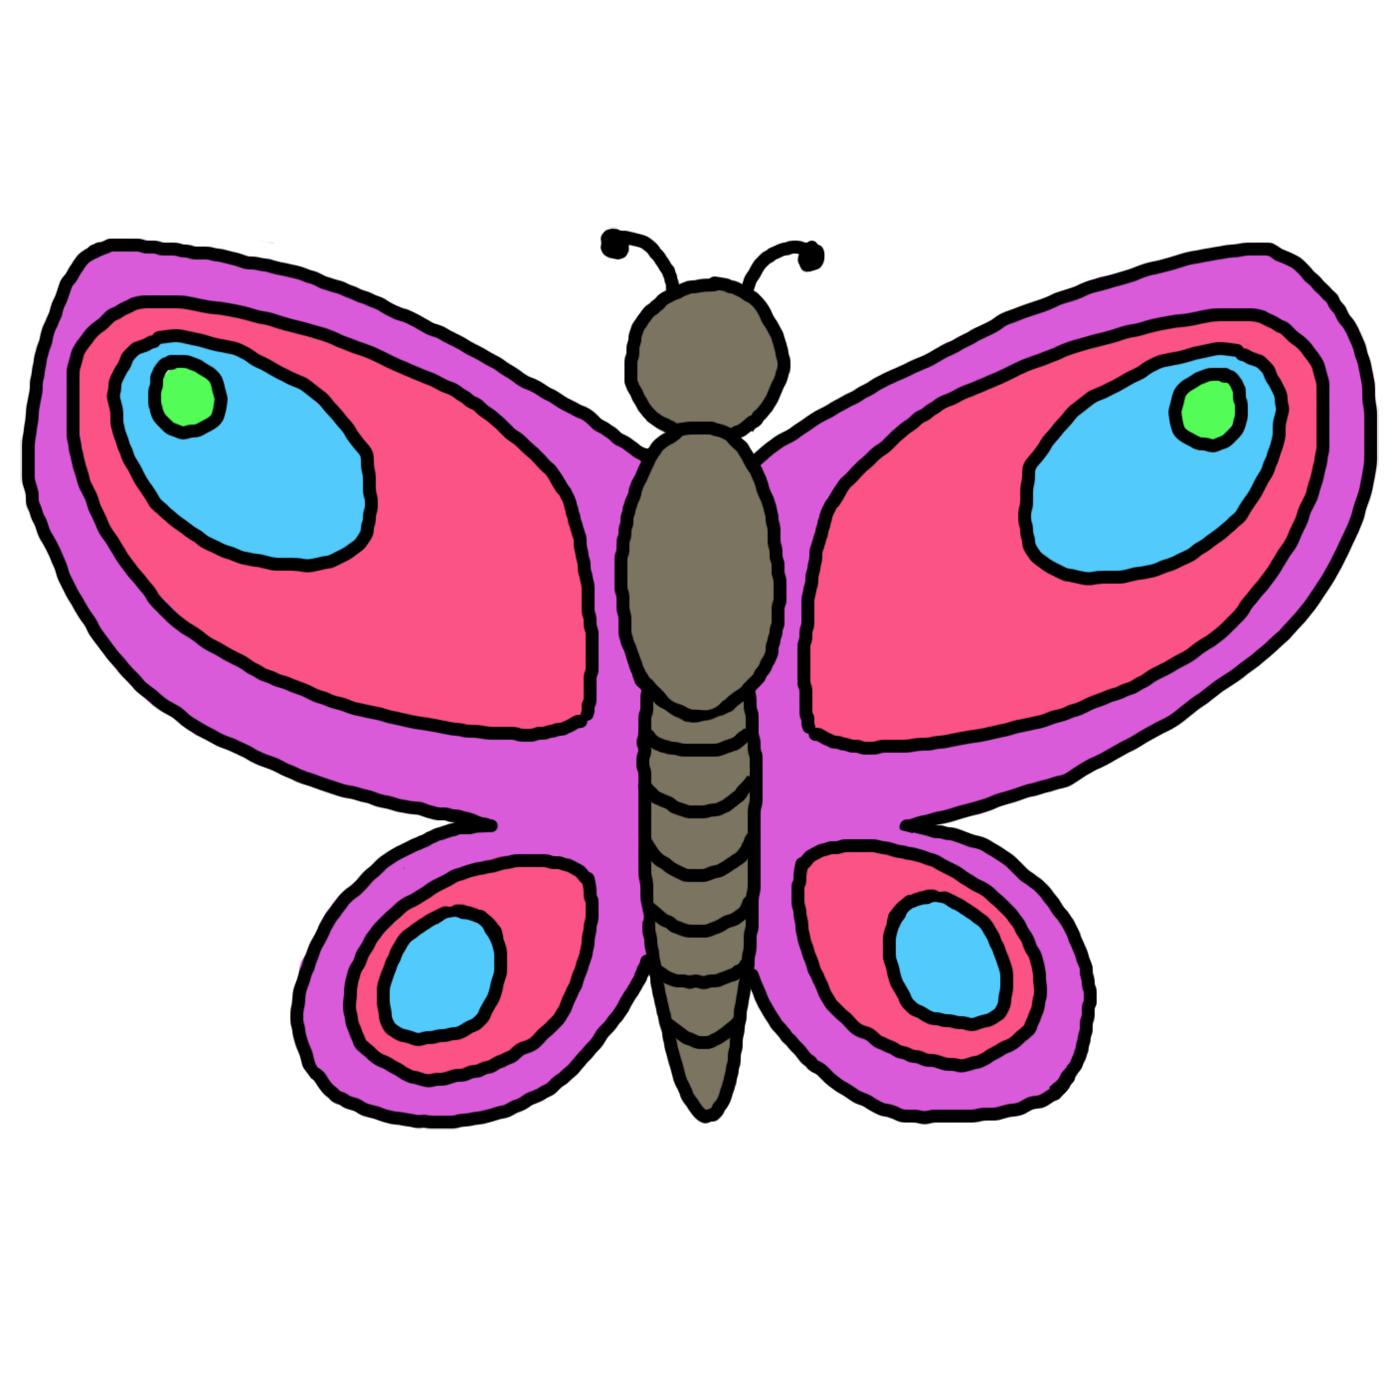 Butterfly clipart #13, Download drawings